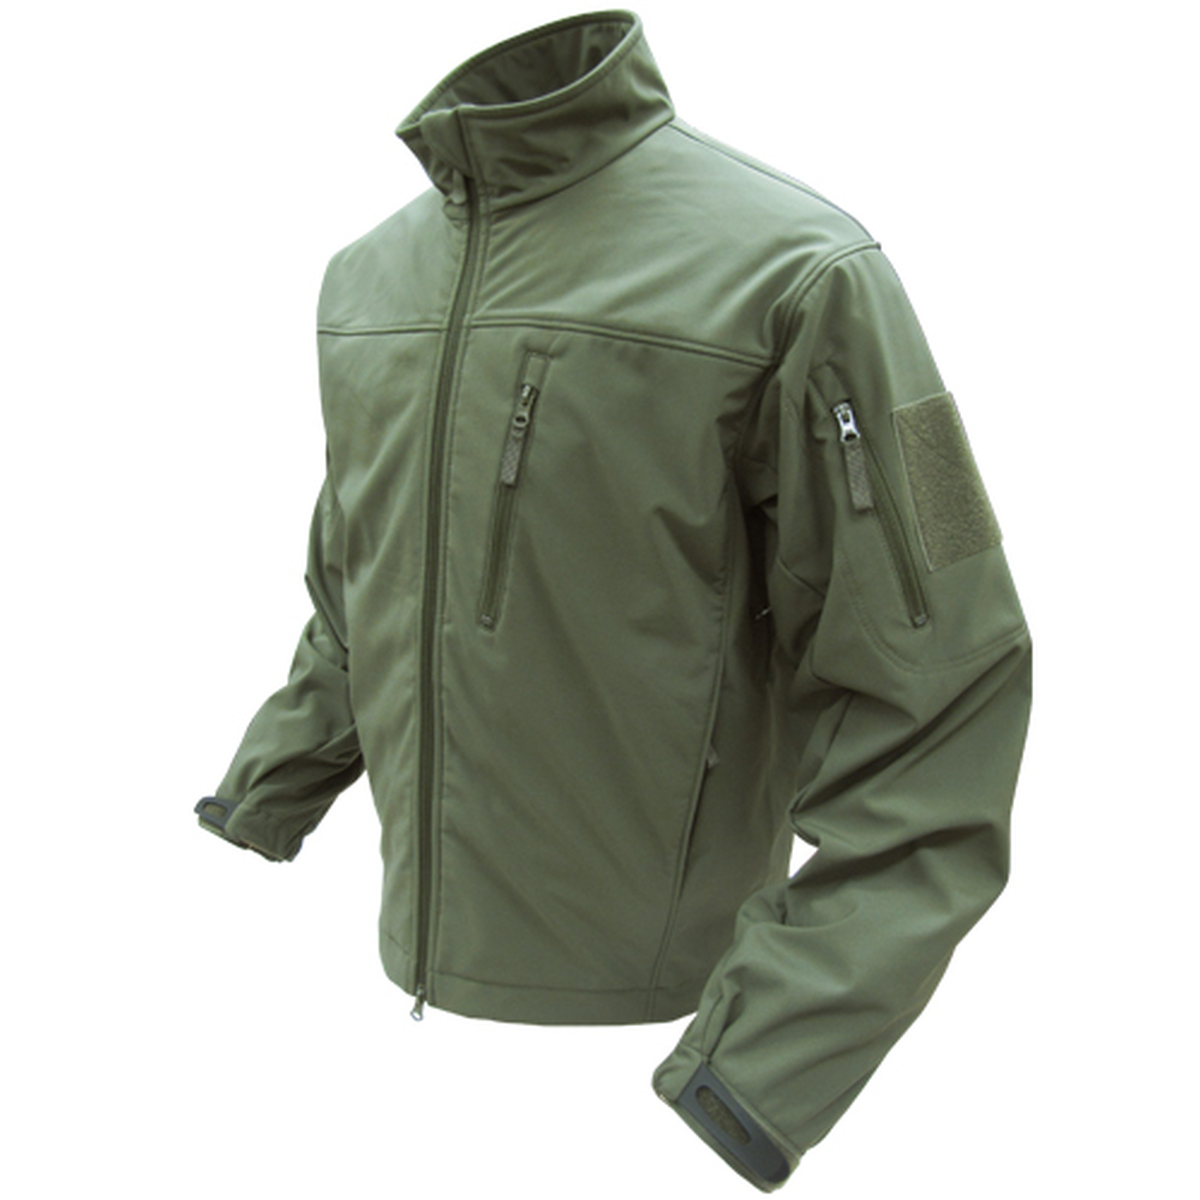 Phantom Soft Shell Jacket